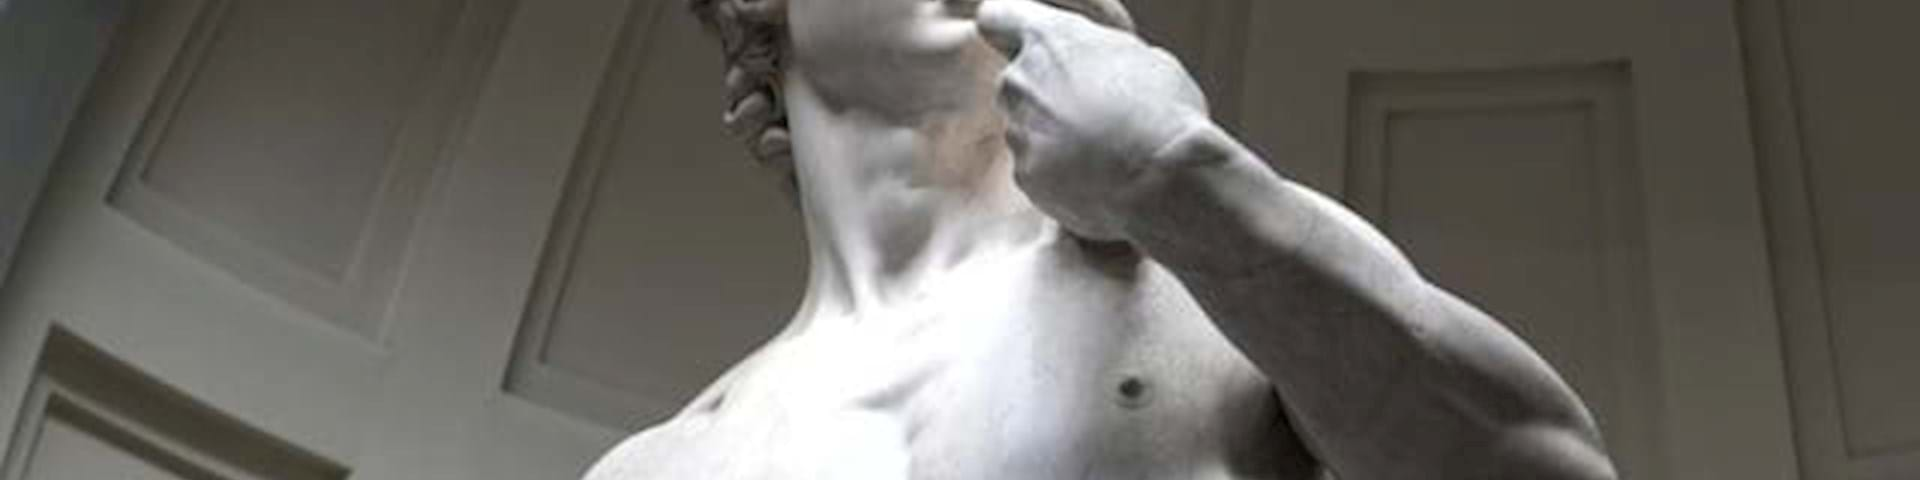 Michelangelo's David Tours